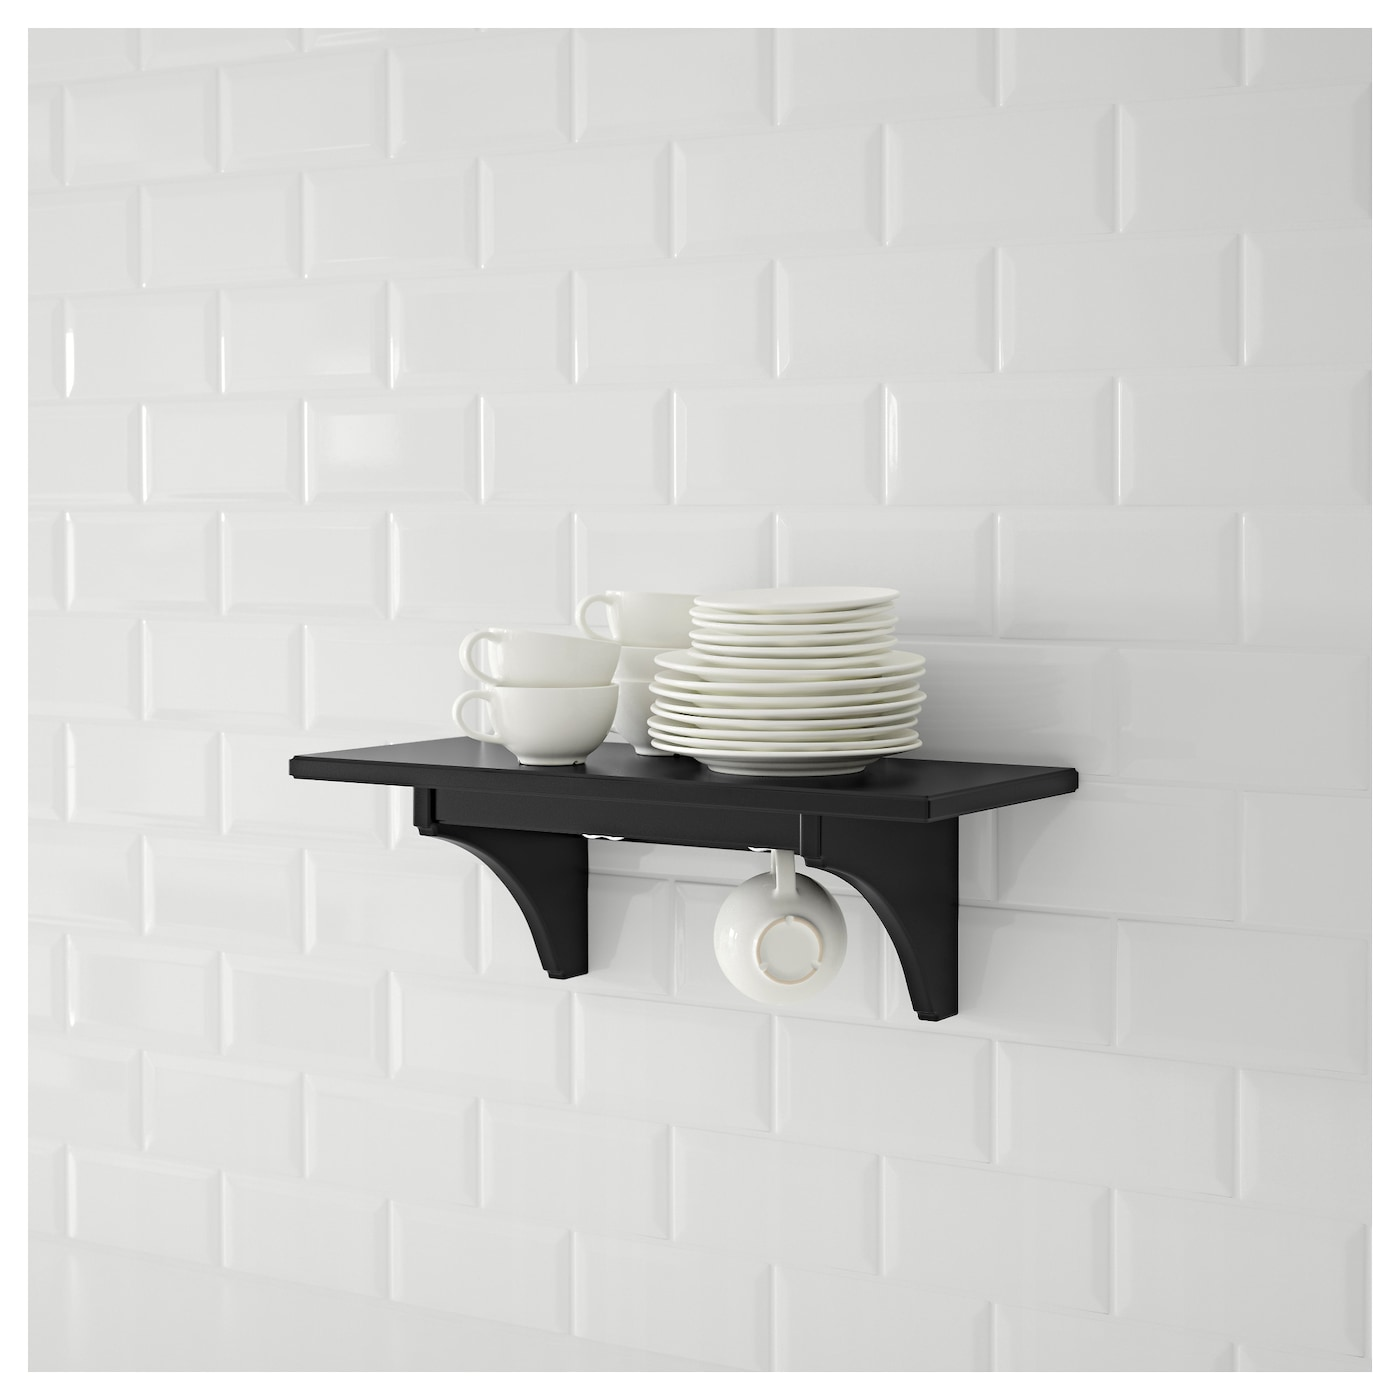 Stenstorp wall shelf black brown 60 cm ikea - Black days ikea ...